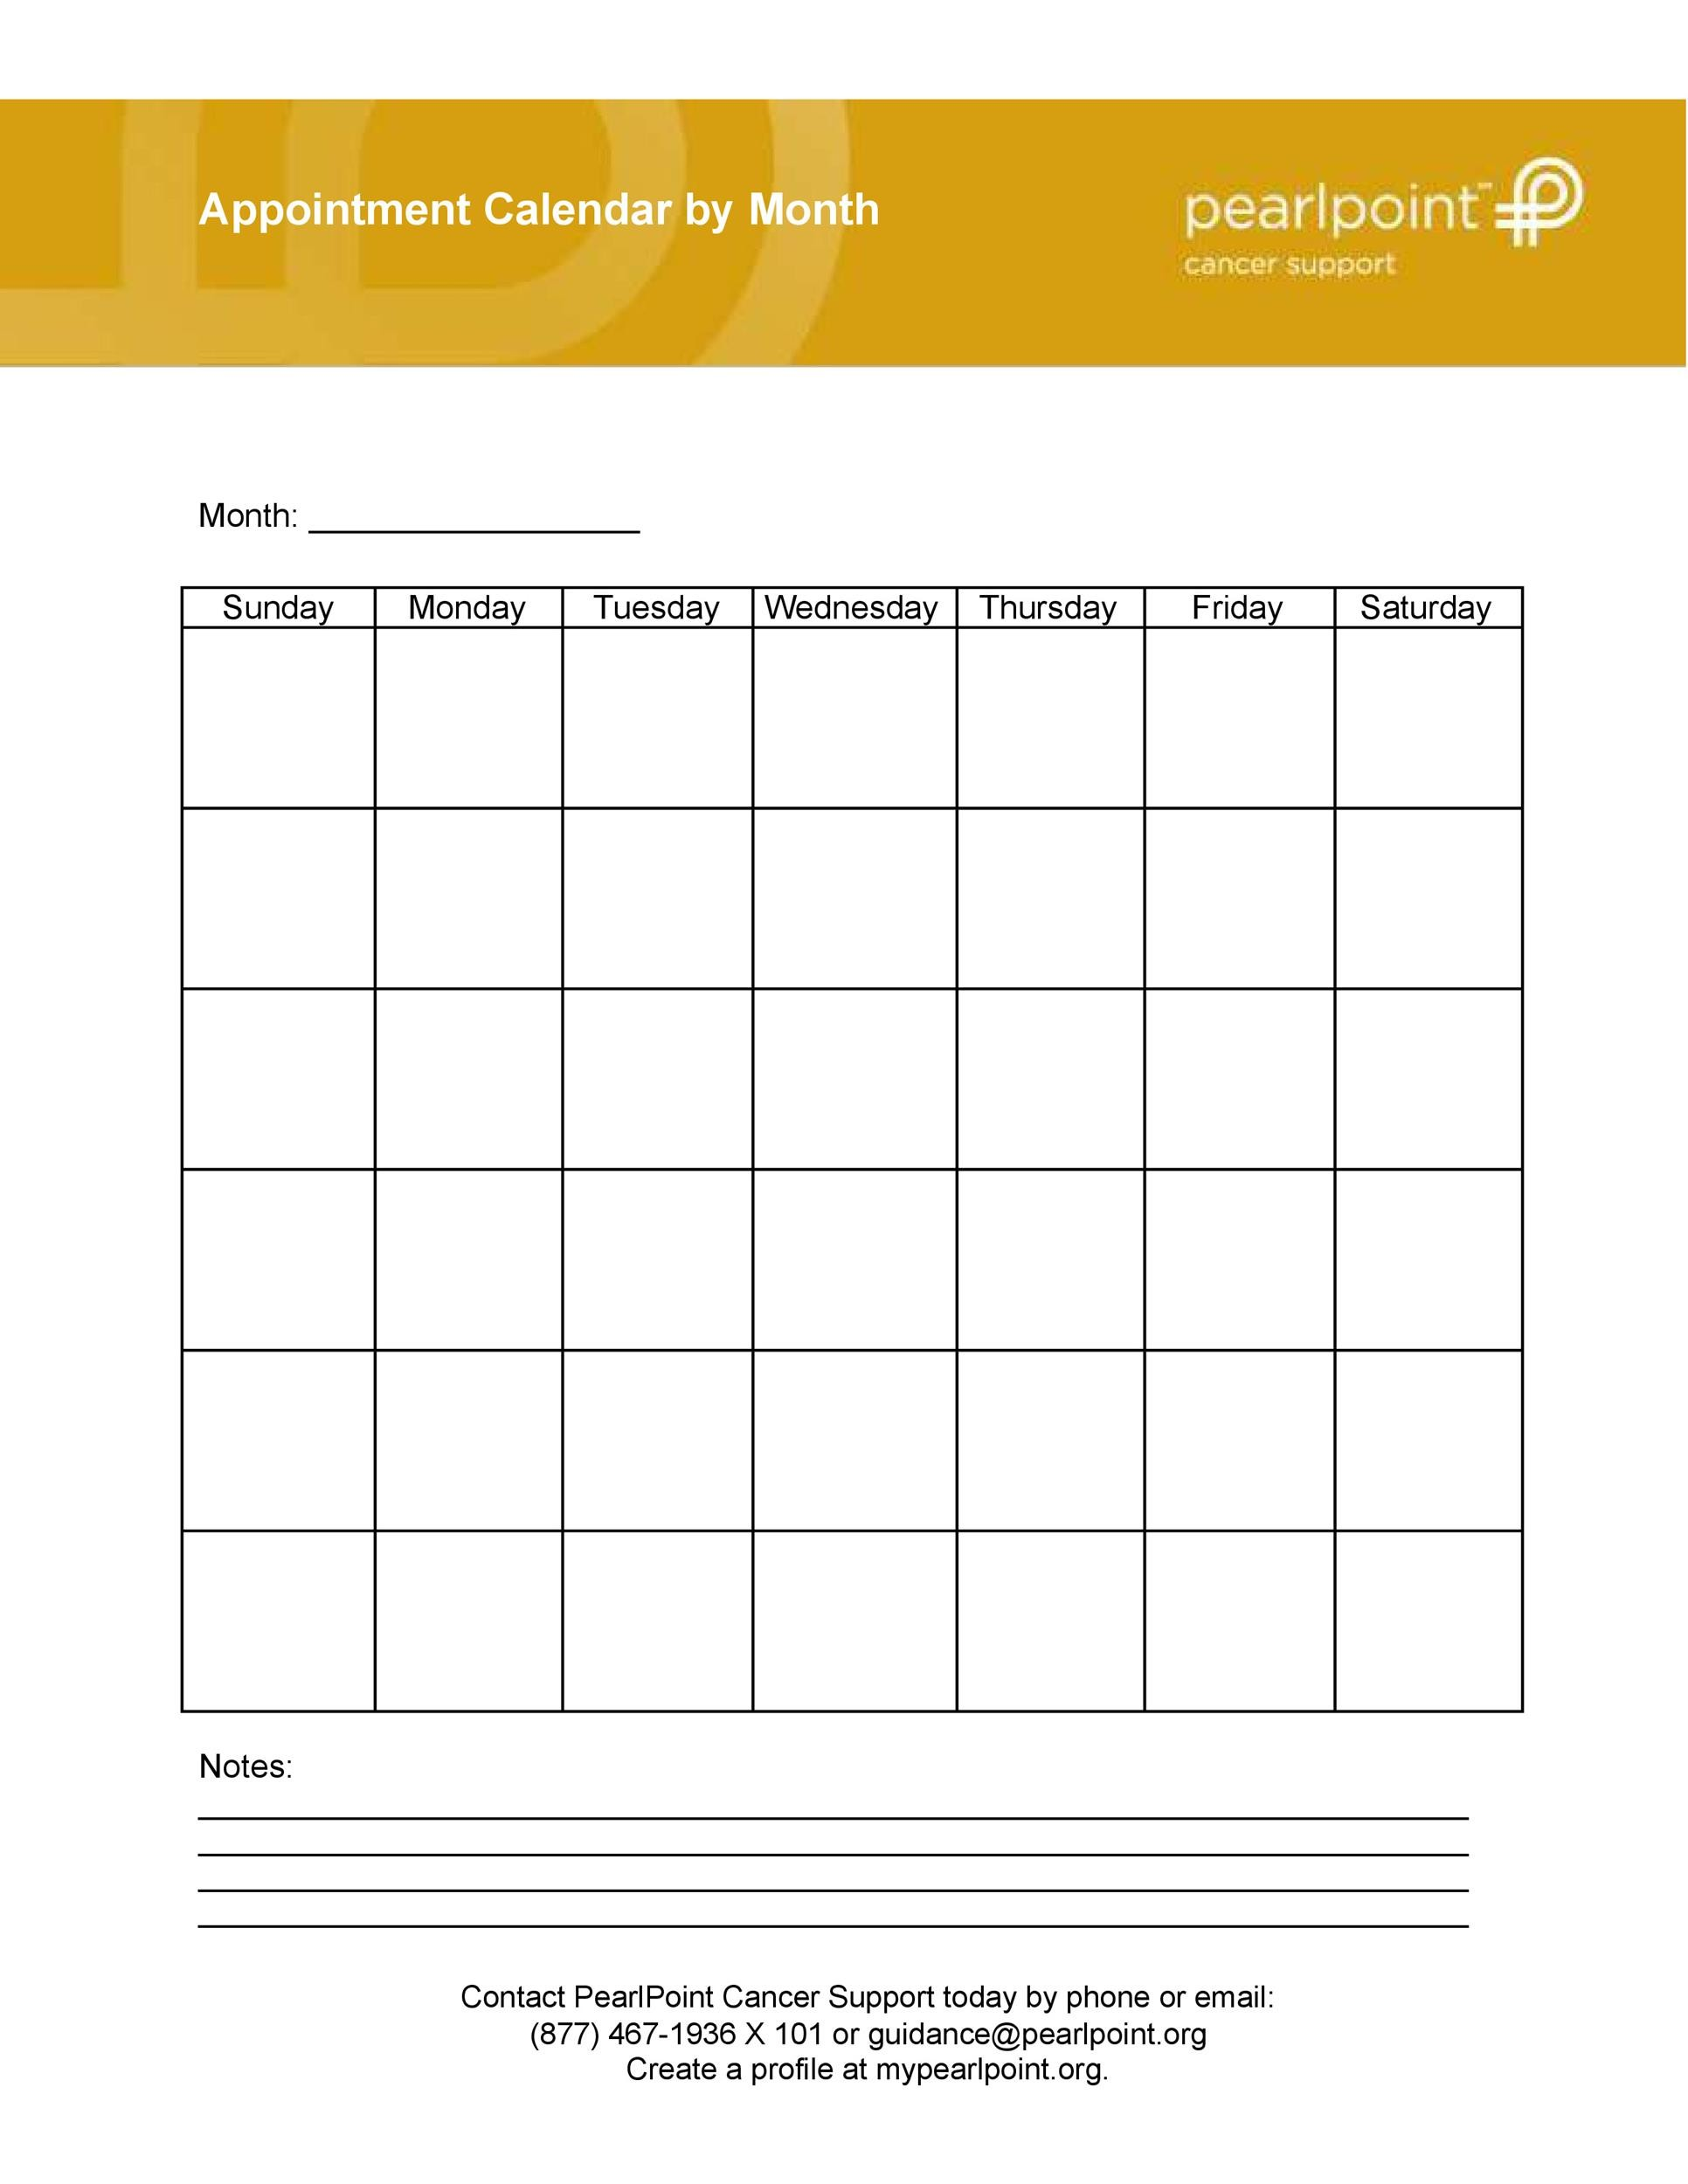 photo regarding Appointment Calendars Printable named 45 Printable Appointment Plan Templates [ Appointment